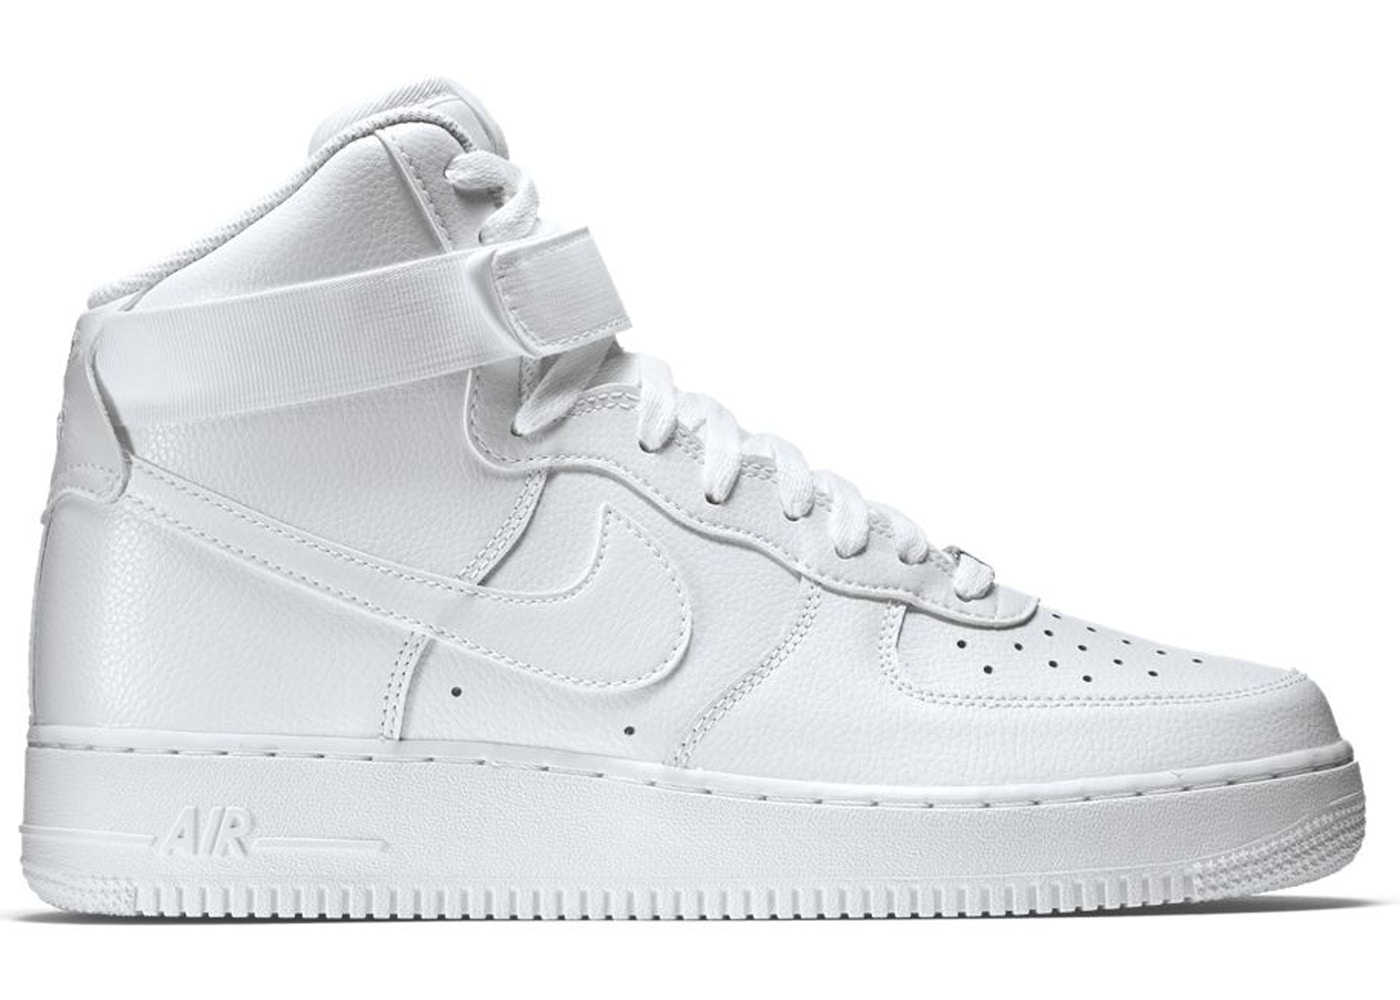 super popular 78108 1c0d4 Buy Nike Air Force 1 Shoes  Deadstock Sneakers